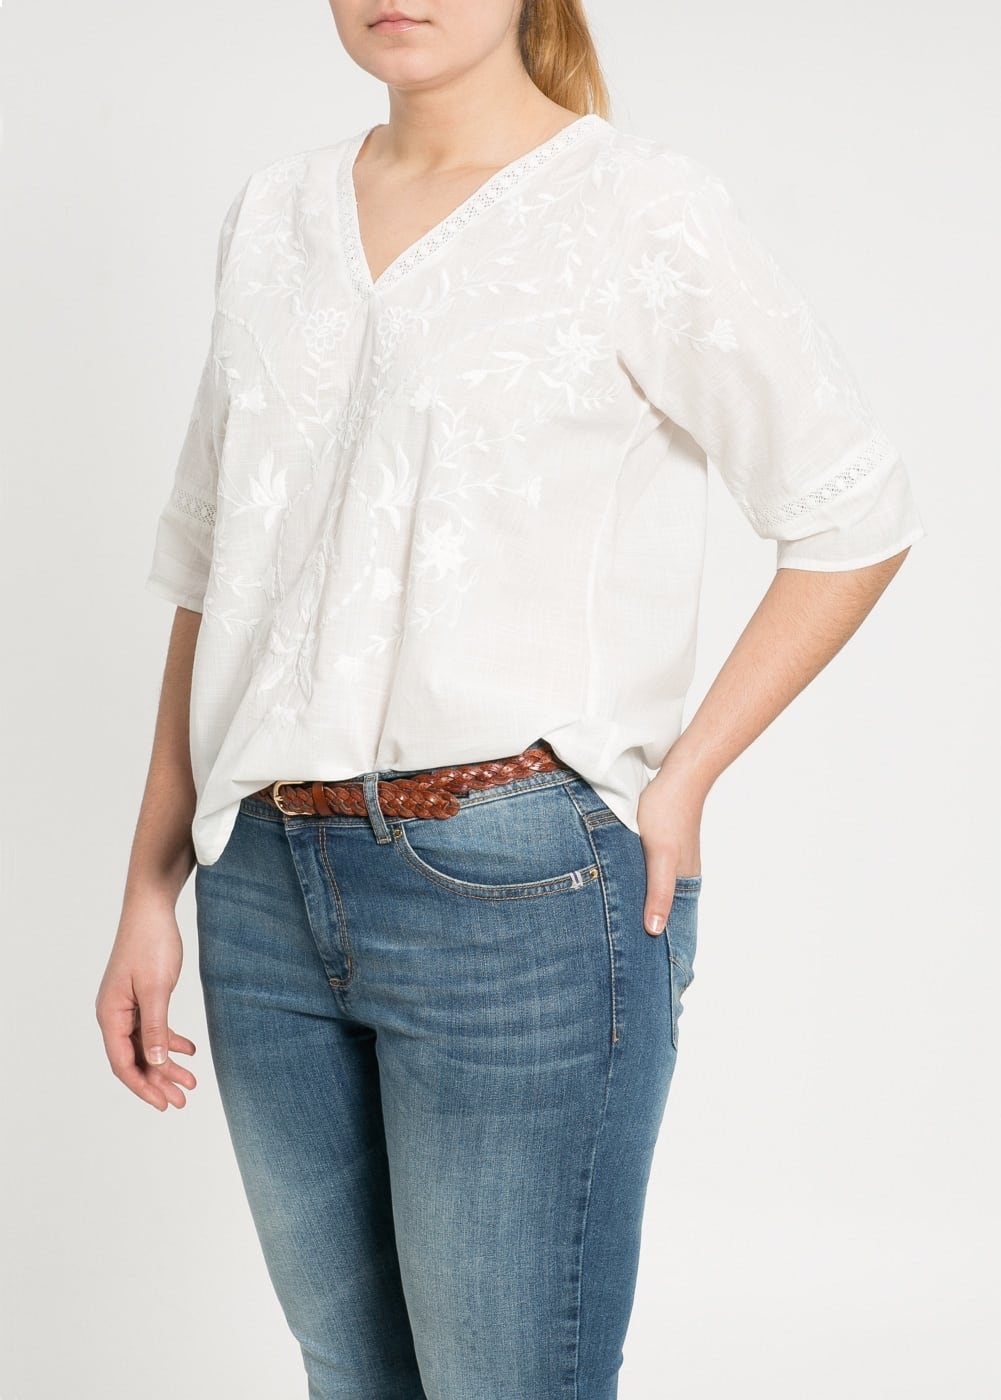 Crochet embroidered blouse